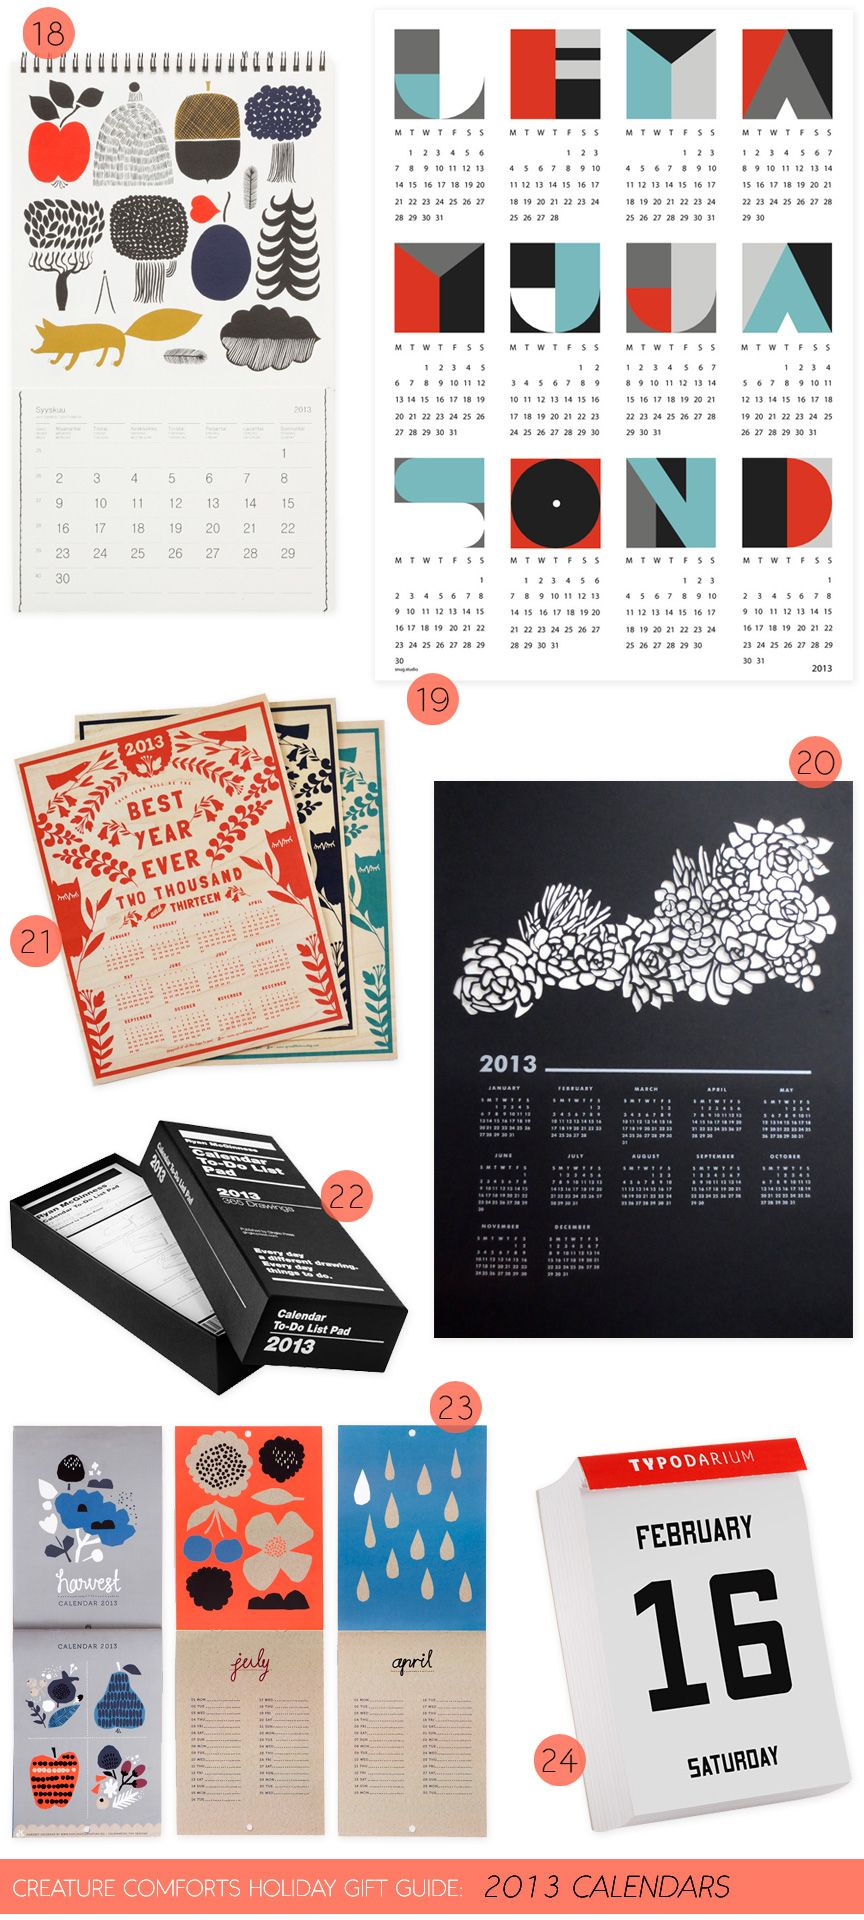 Creature Comforts Holiday Gift Guide: 2013Calendars - Home - Creature Comforts - daily inspiration, style, diy projects + freebies